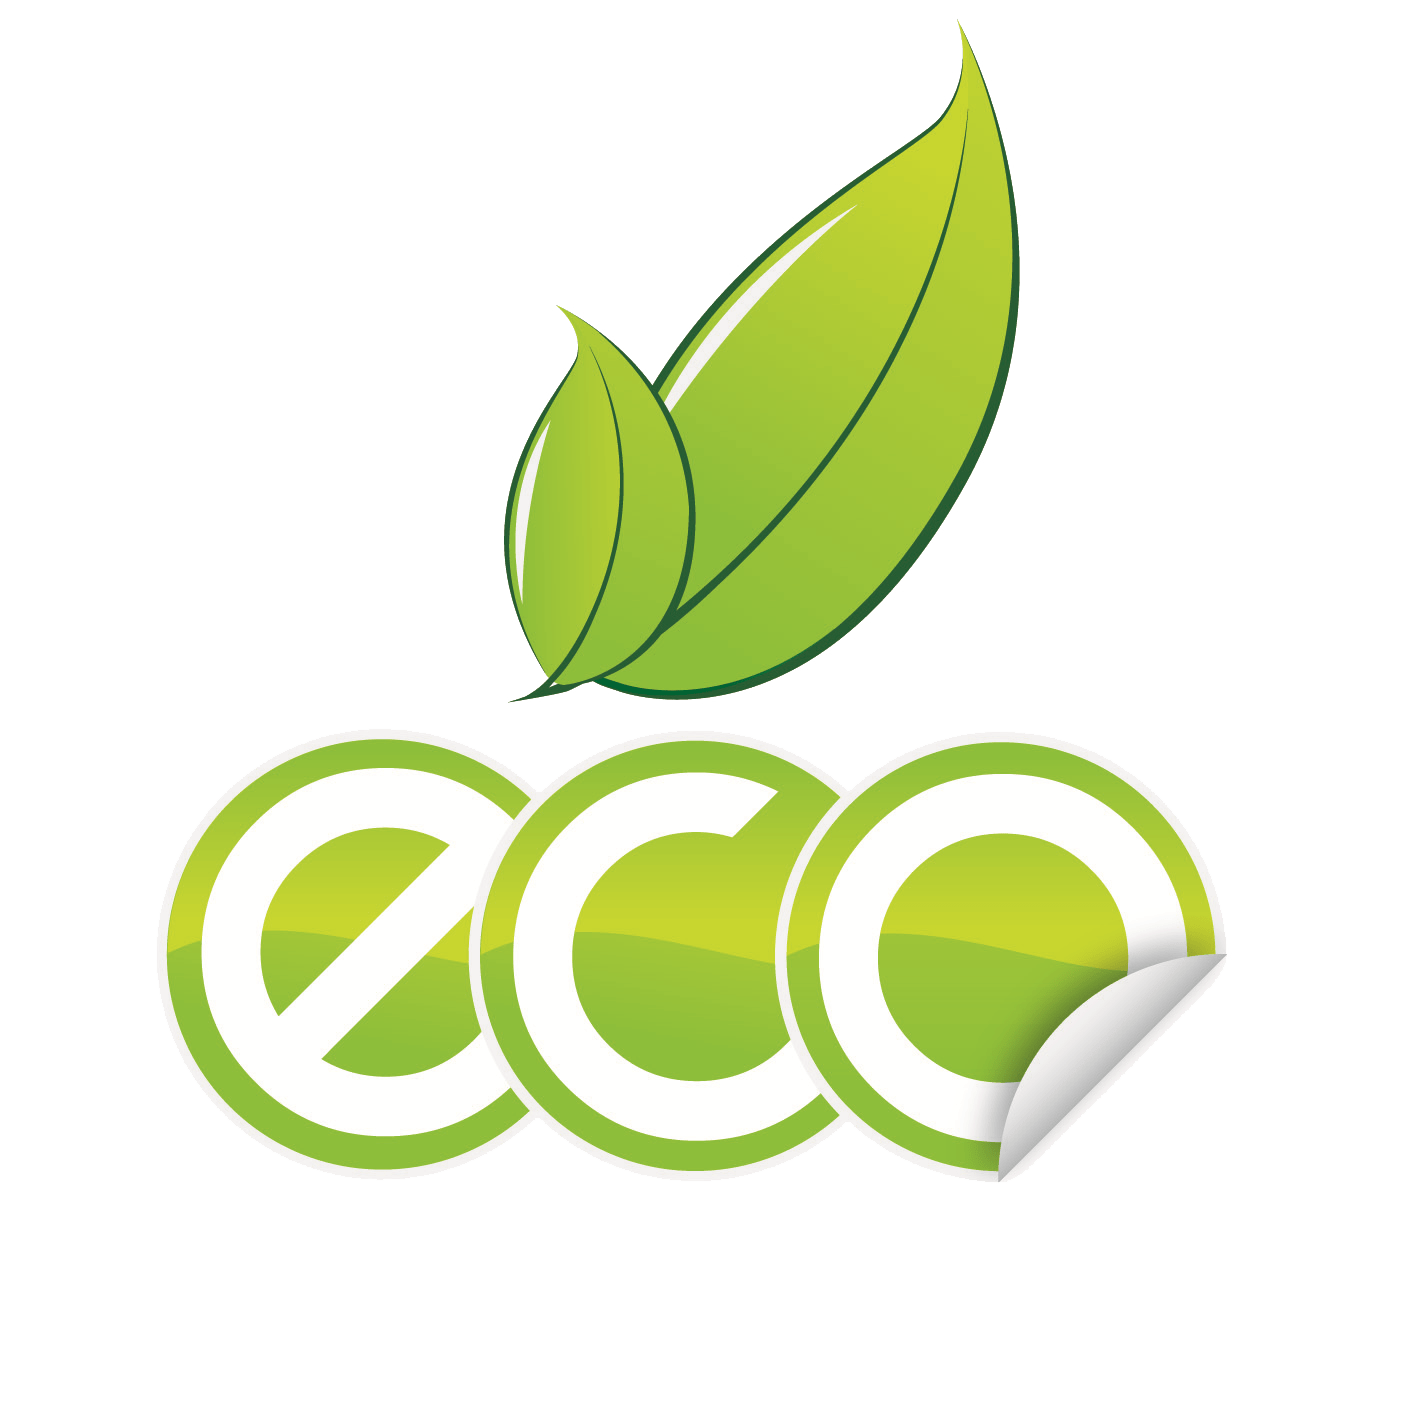 Car Wallpaper Free Download For Android Eco Logo Logo Brands For Free Hd 3d